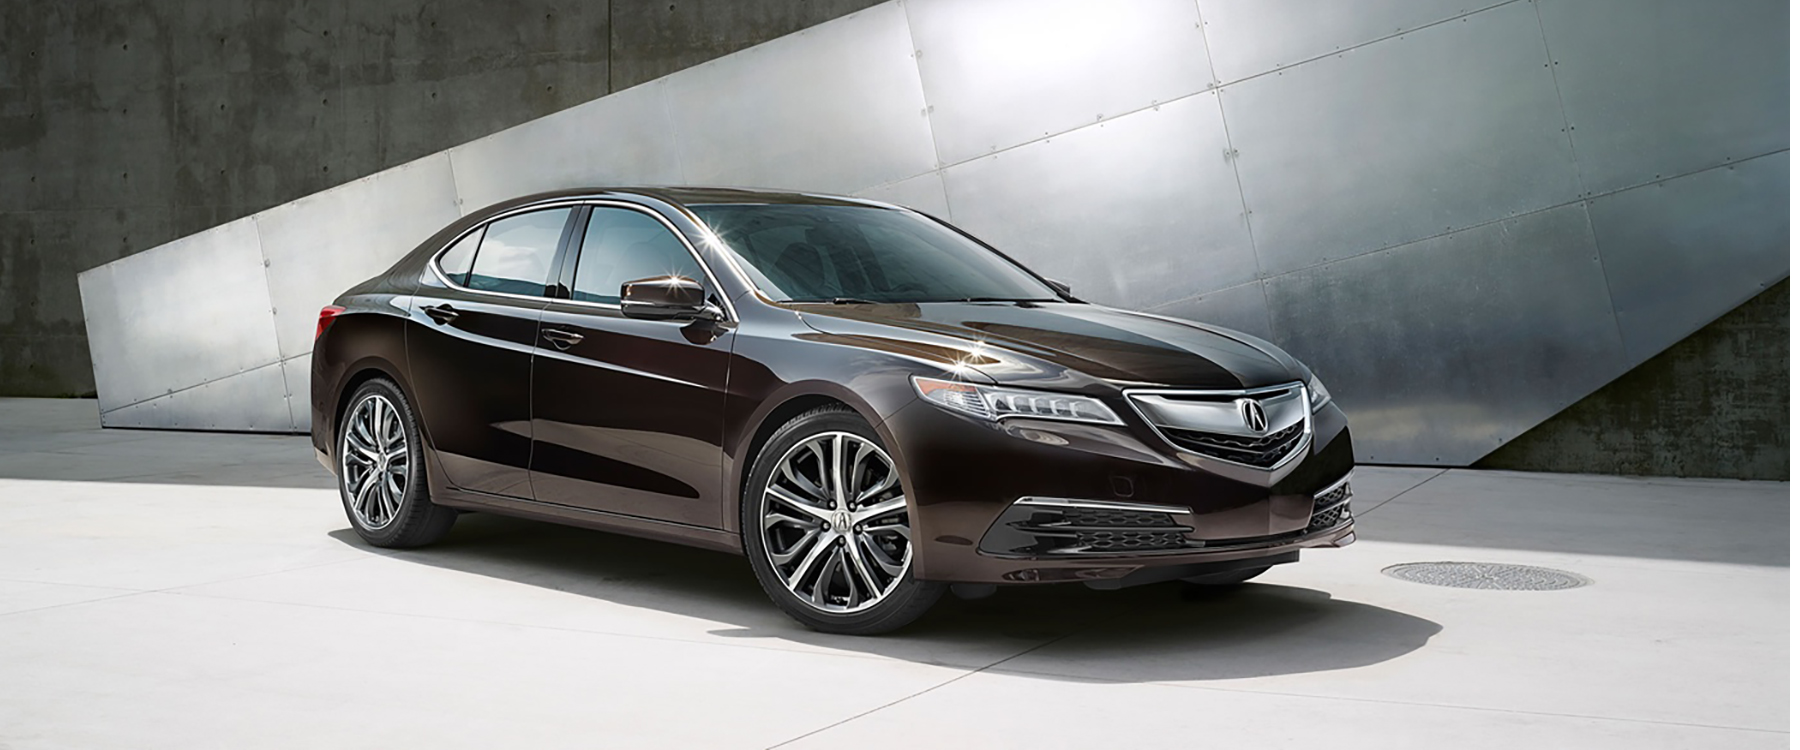 Acura Offers The Most Affordable Luxury Cars On The Road